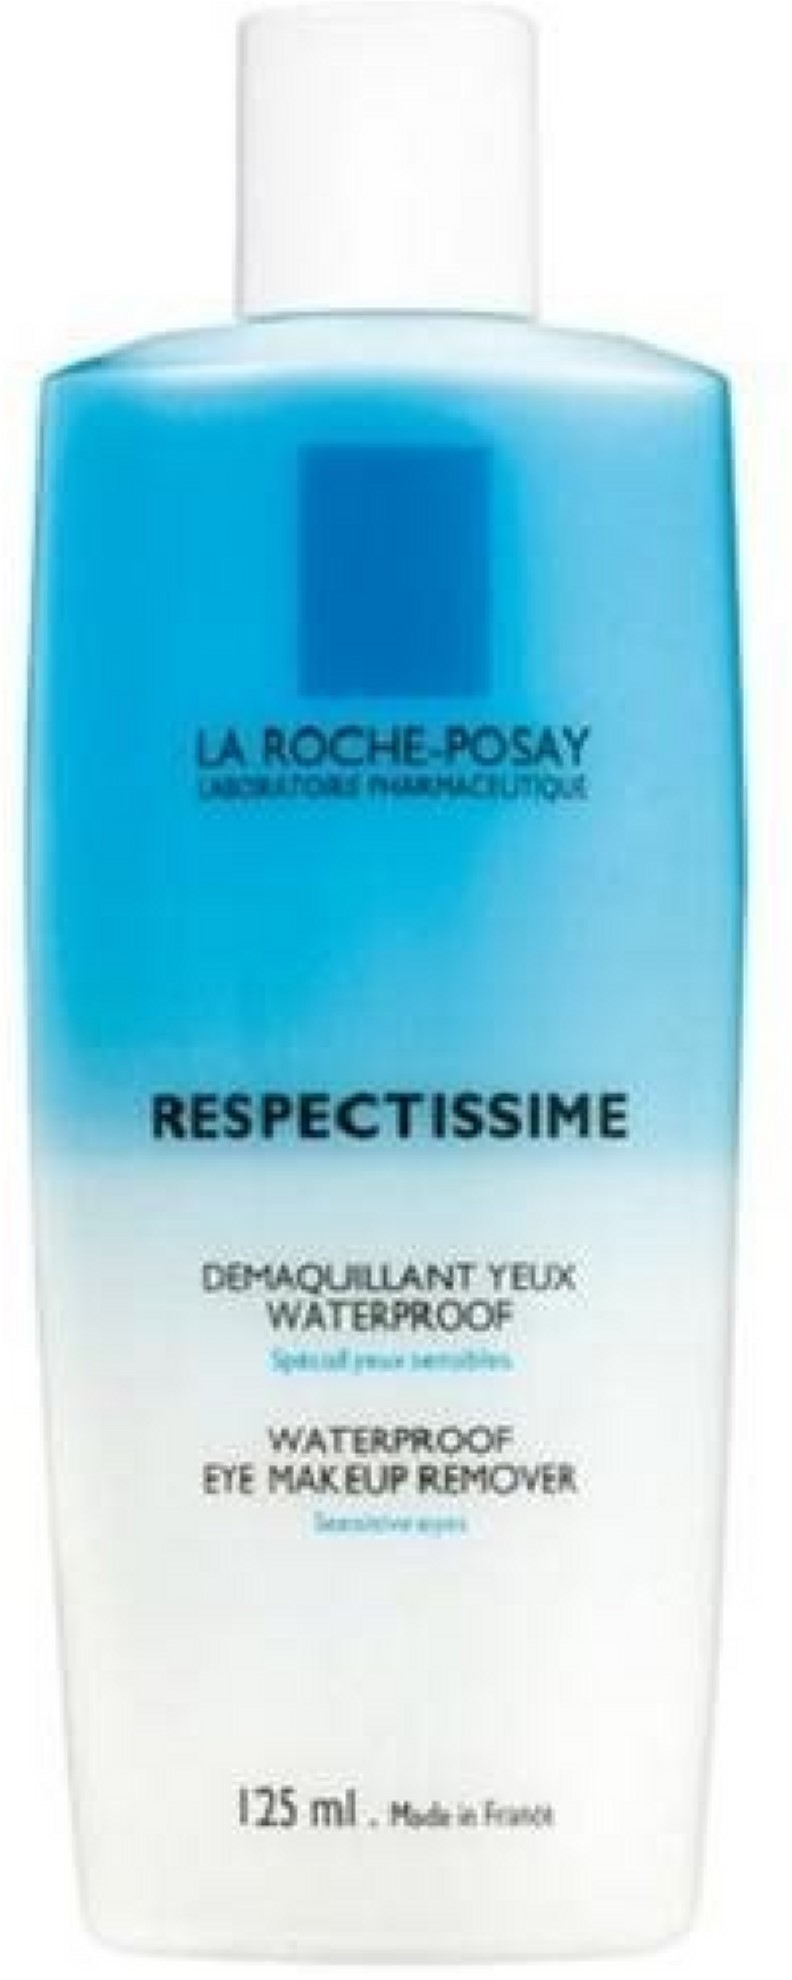 2 Pack - La Roche-Posay Respectissime Waterproof Eye Makeup Remover 4.2 oz Honey and Almond